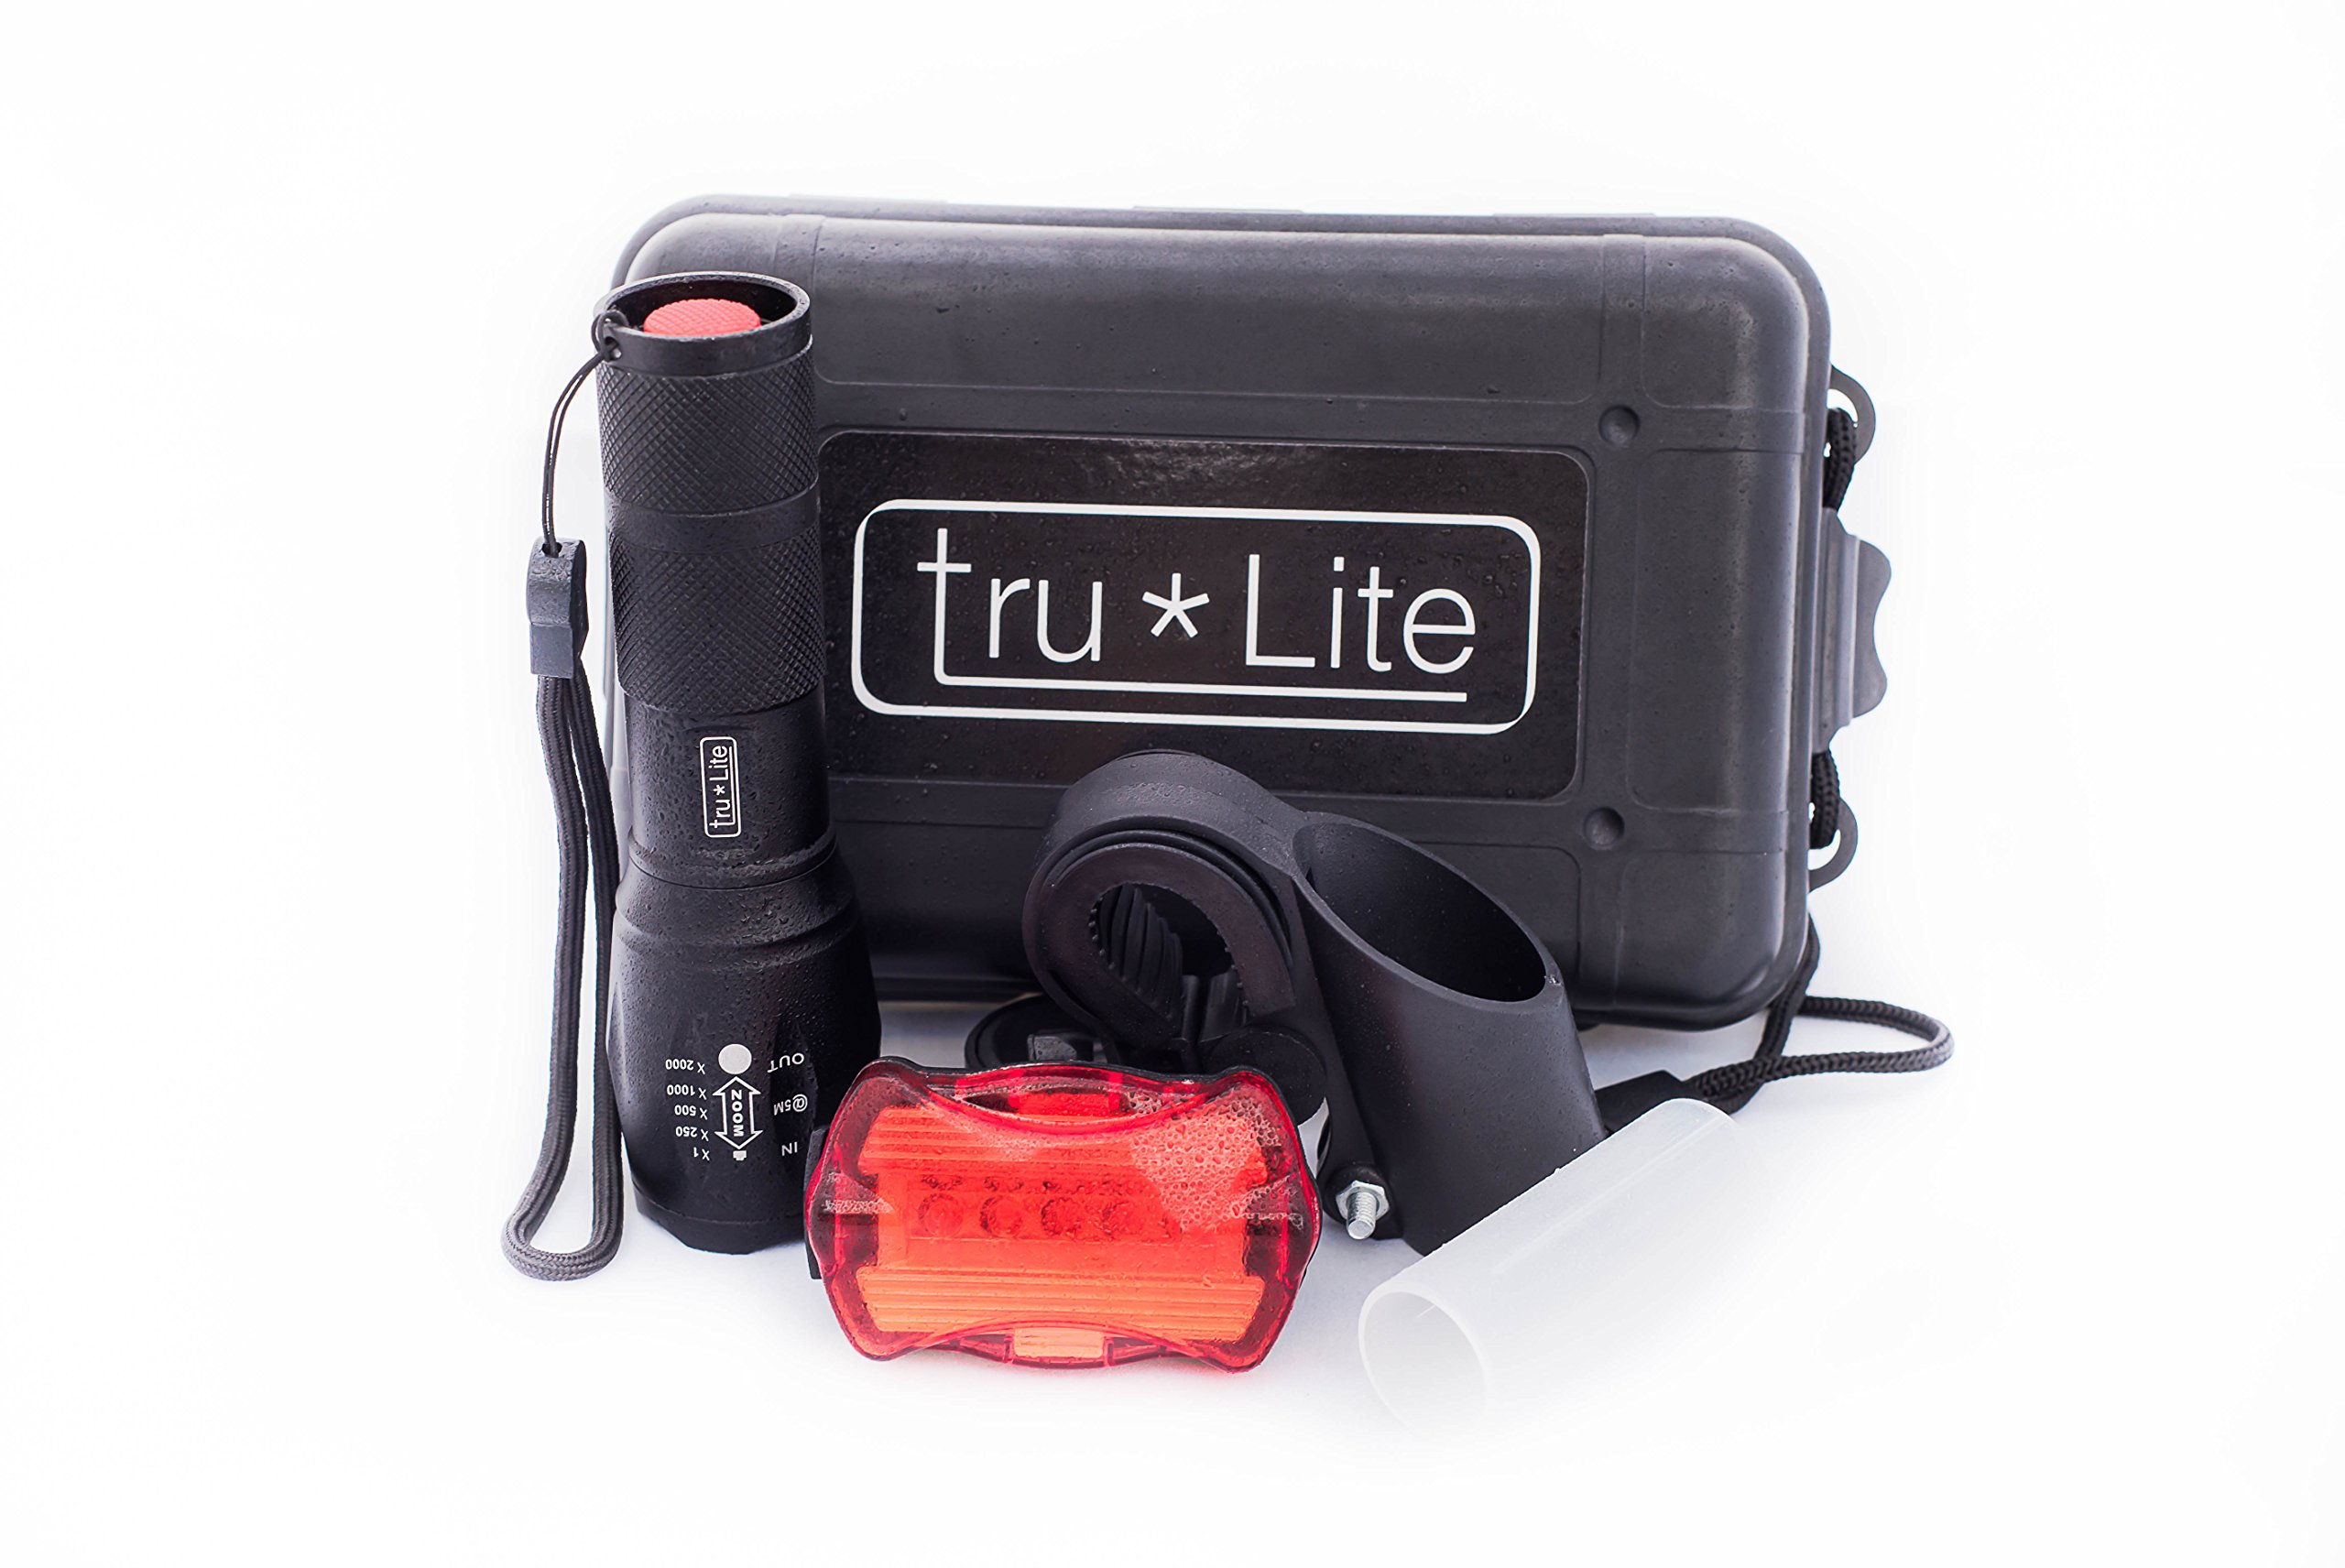 tru*Lite Bike Light Set-Super Bright 10W Removable Military Grade Tactical Flash Light-5 modes-1000+ Lumens-Zoom-5 LED Tail Light-7 modes-Water Resistant-Easy to Install-Life Time Warranty by tru*Lite (Image #1)